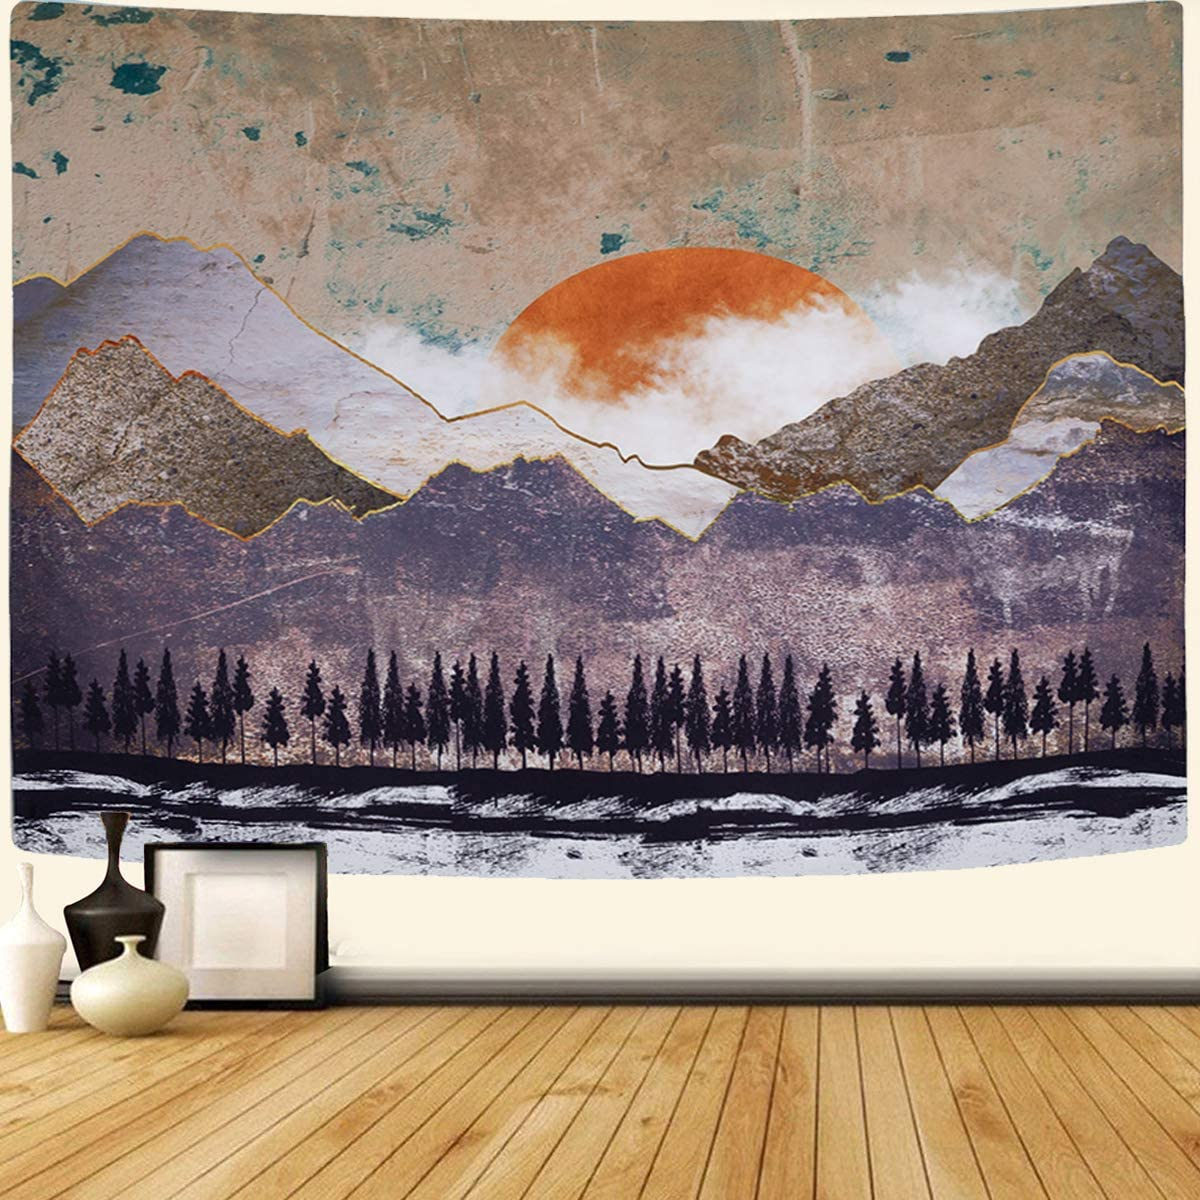 SENYYI Mountain and Sunset Tapestry Wall Hanging Big Sun Tapestry Nature Scenery Art Tapestry Forest Trees Home Decor for Room 70.9 x 92.5 inches